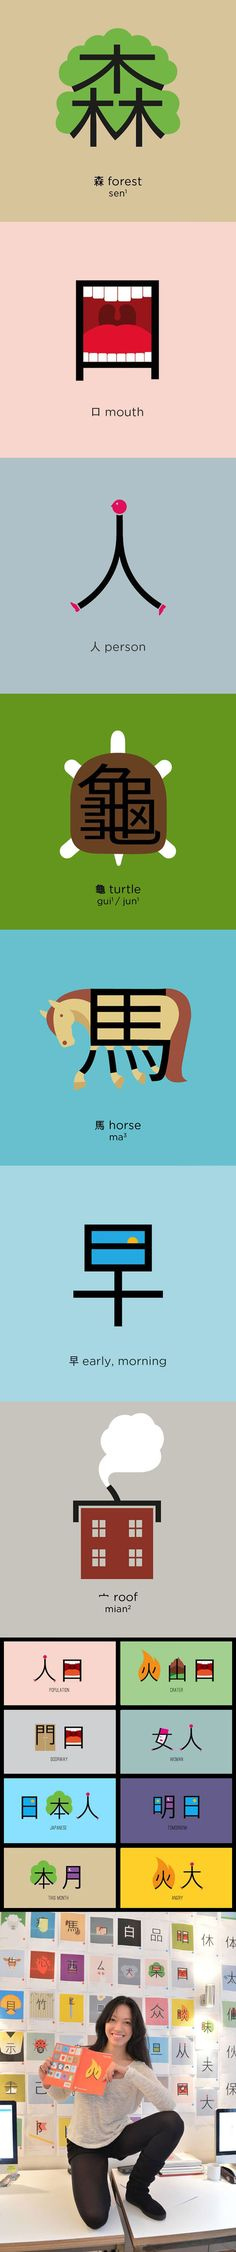 Easy to learn Chinese symbols